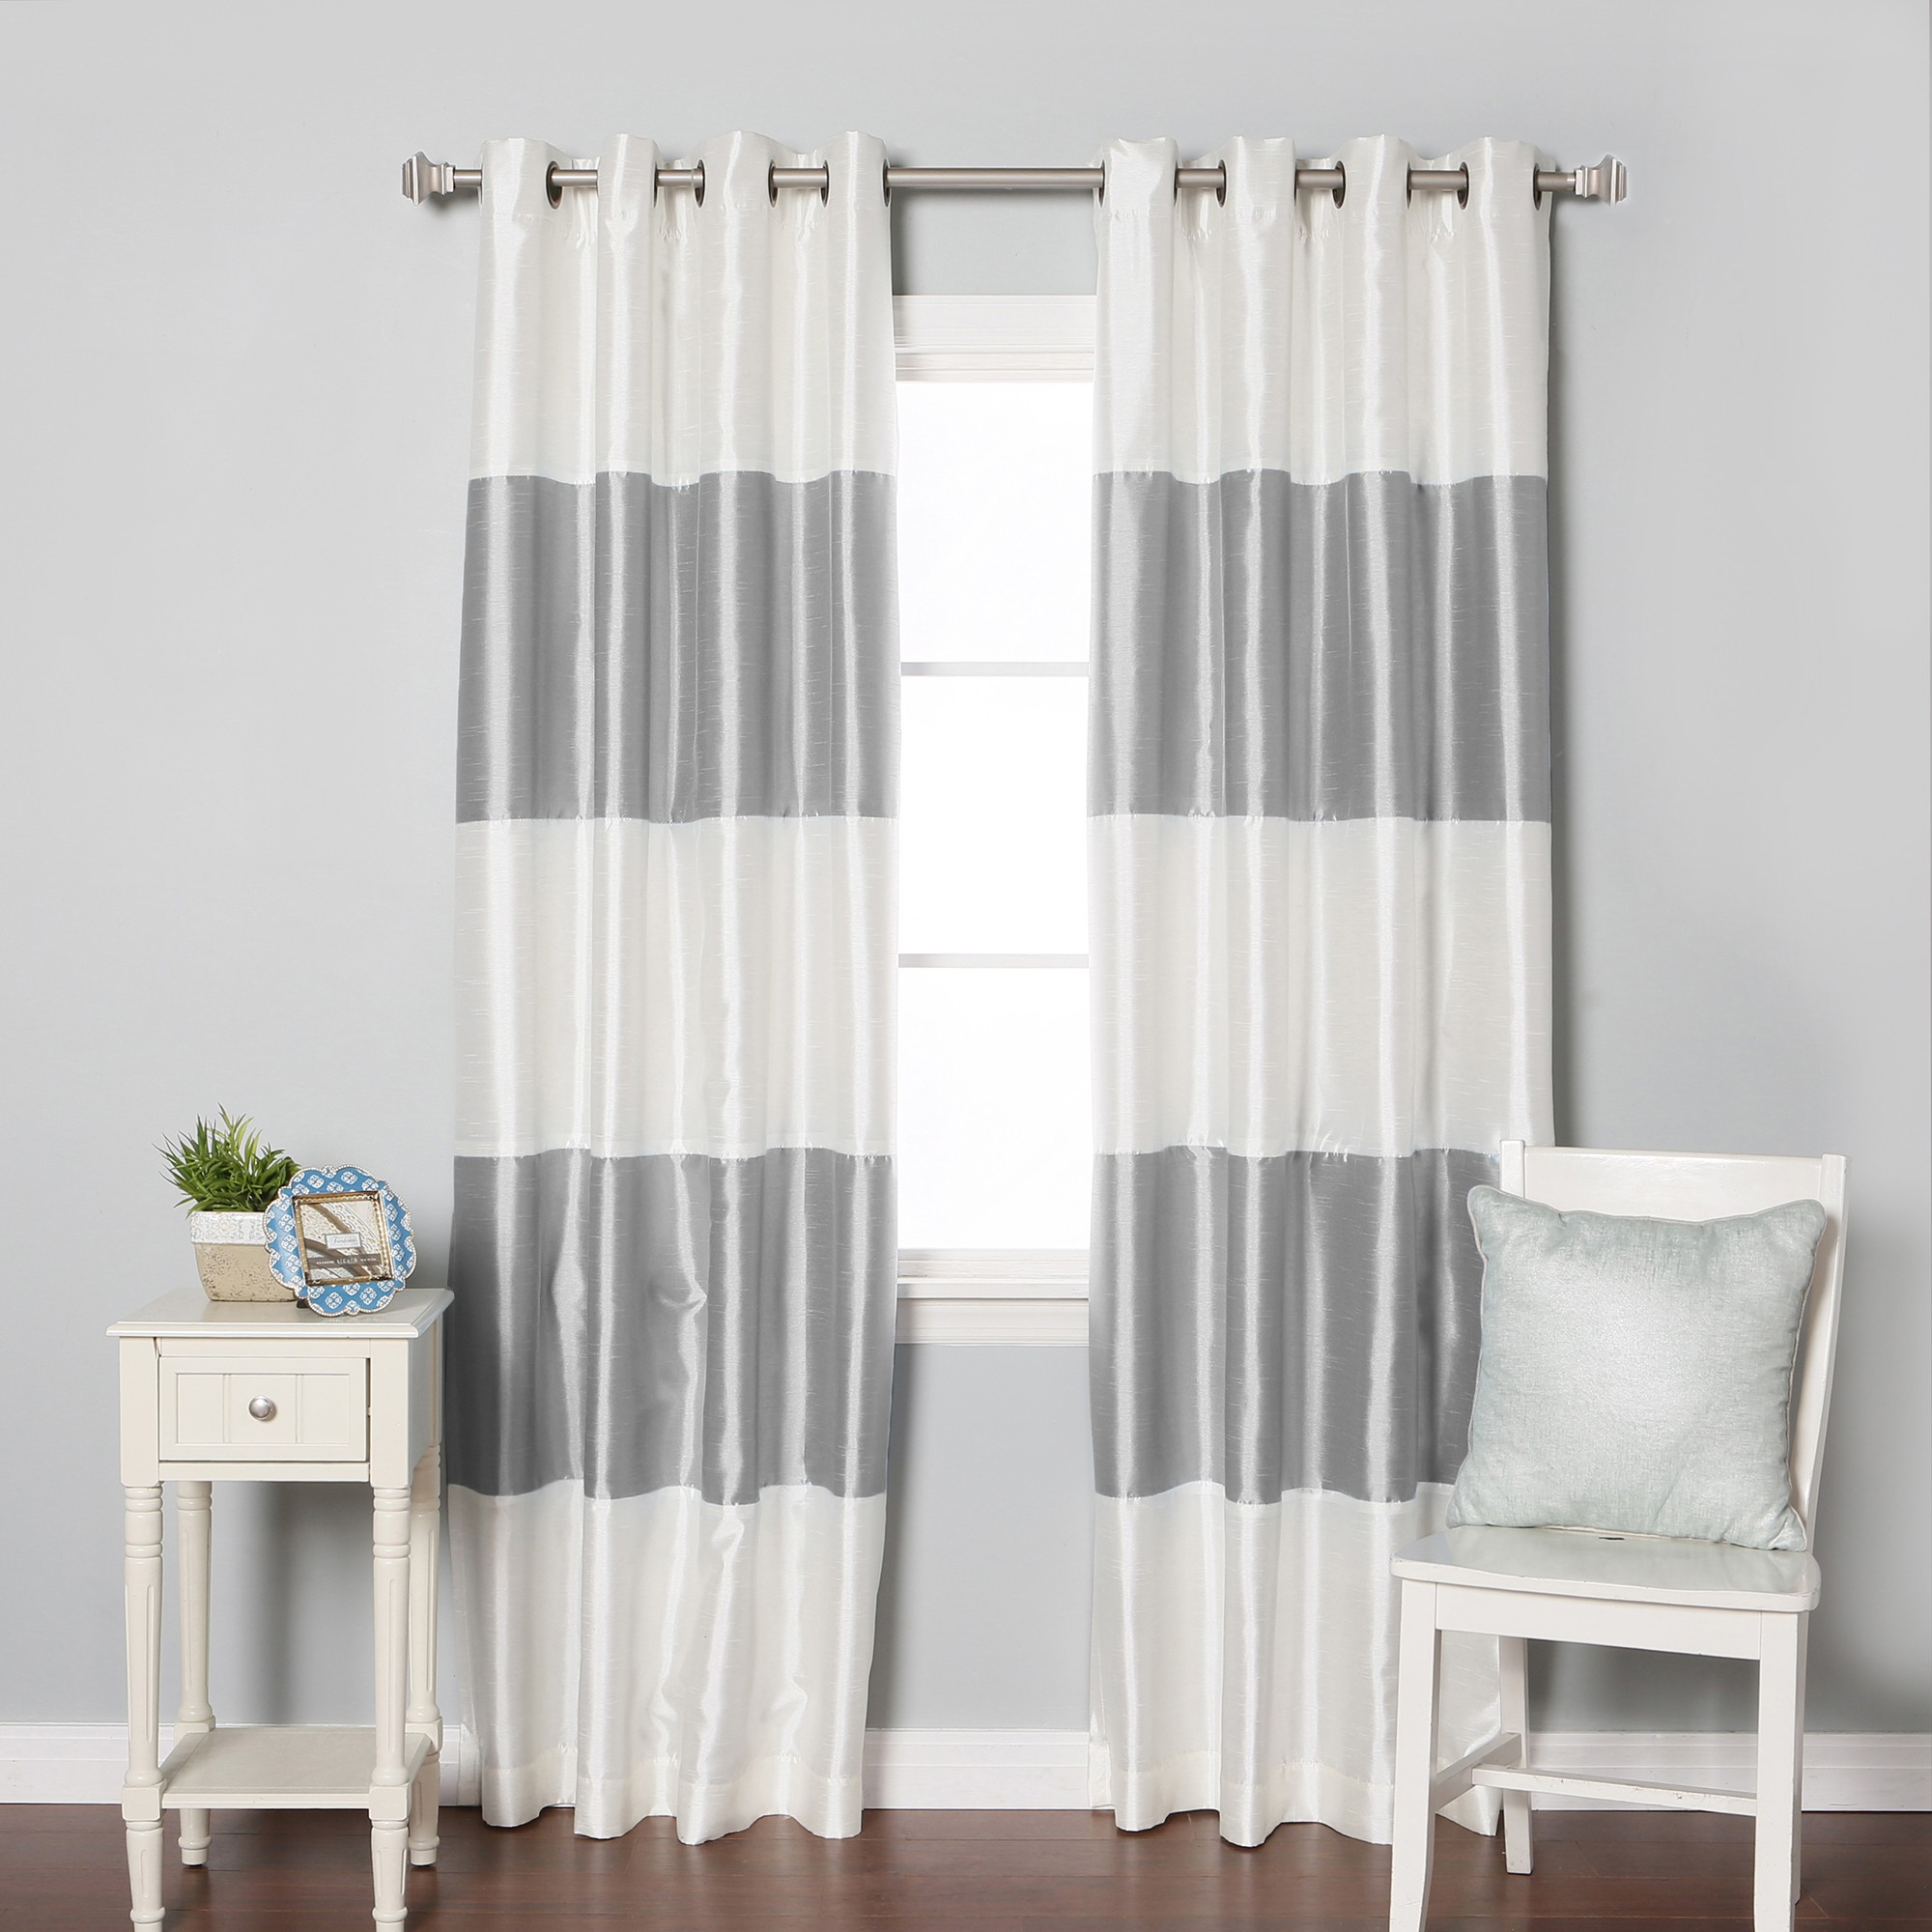 Image of: Blackout Curtains Nursery